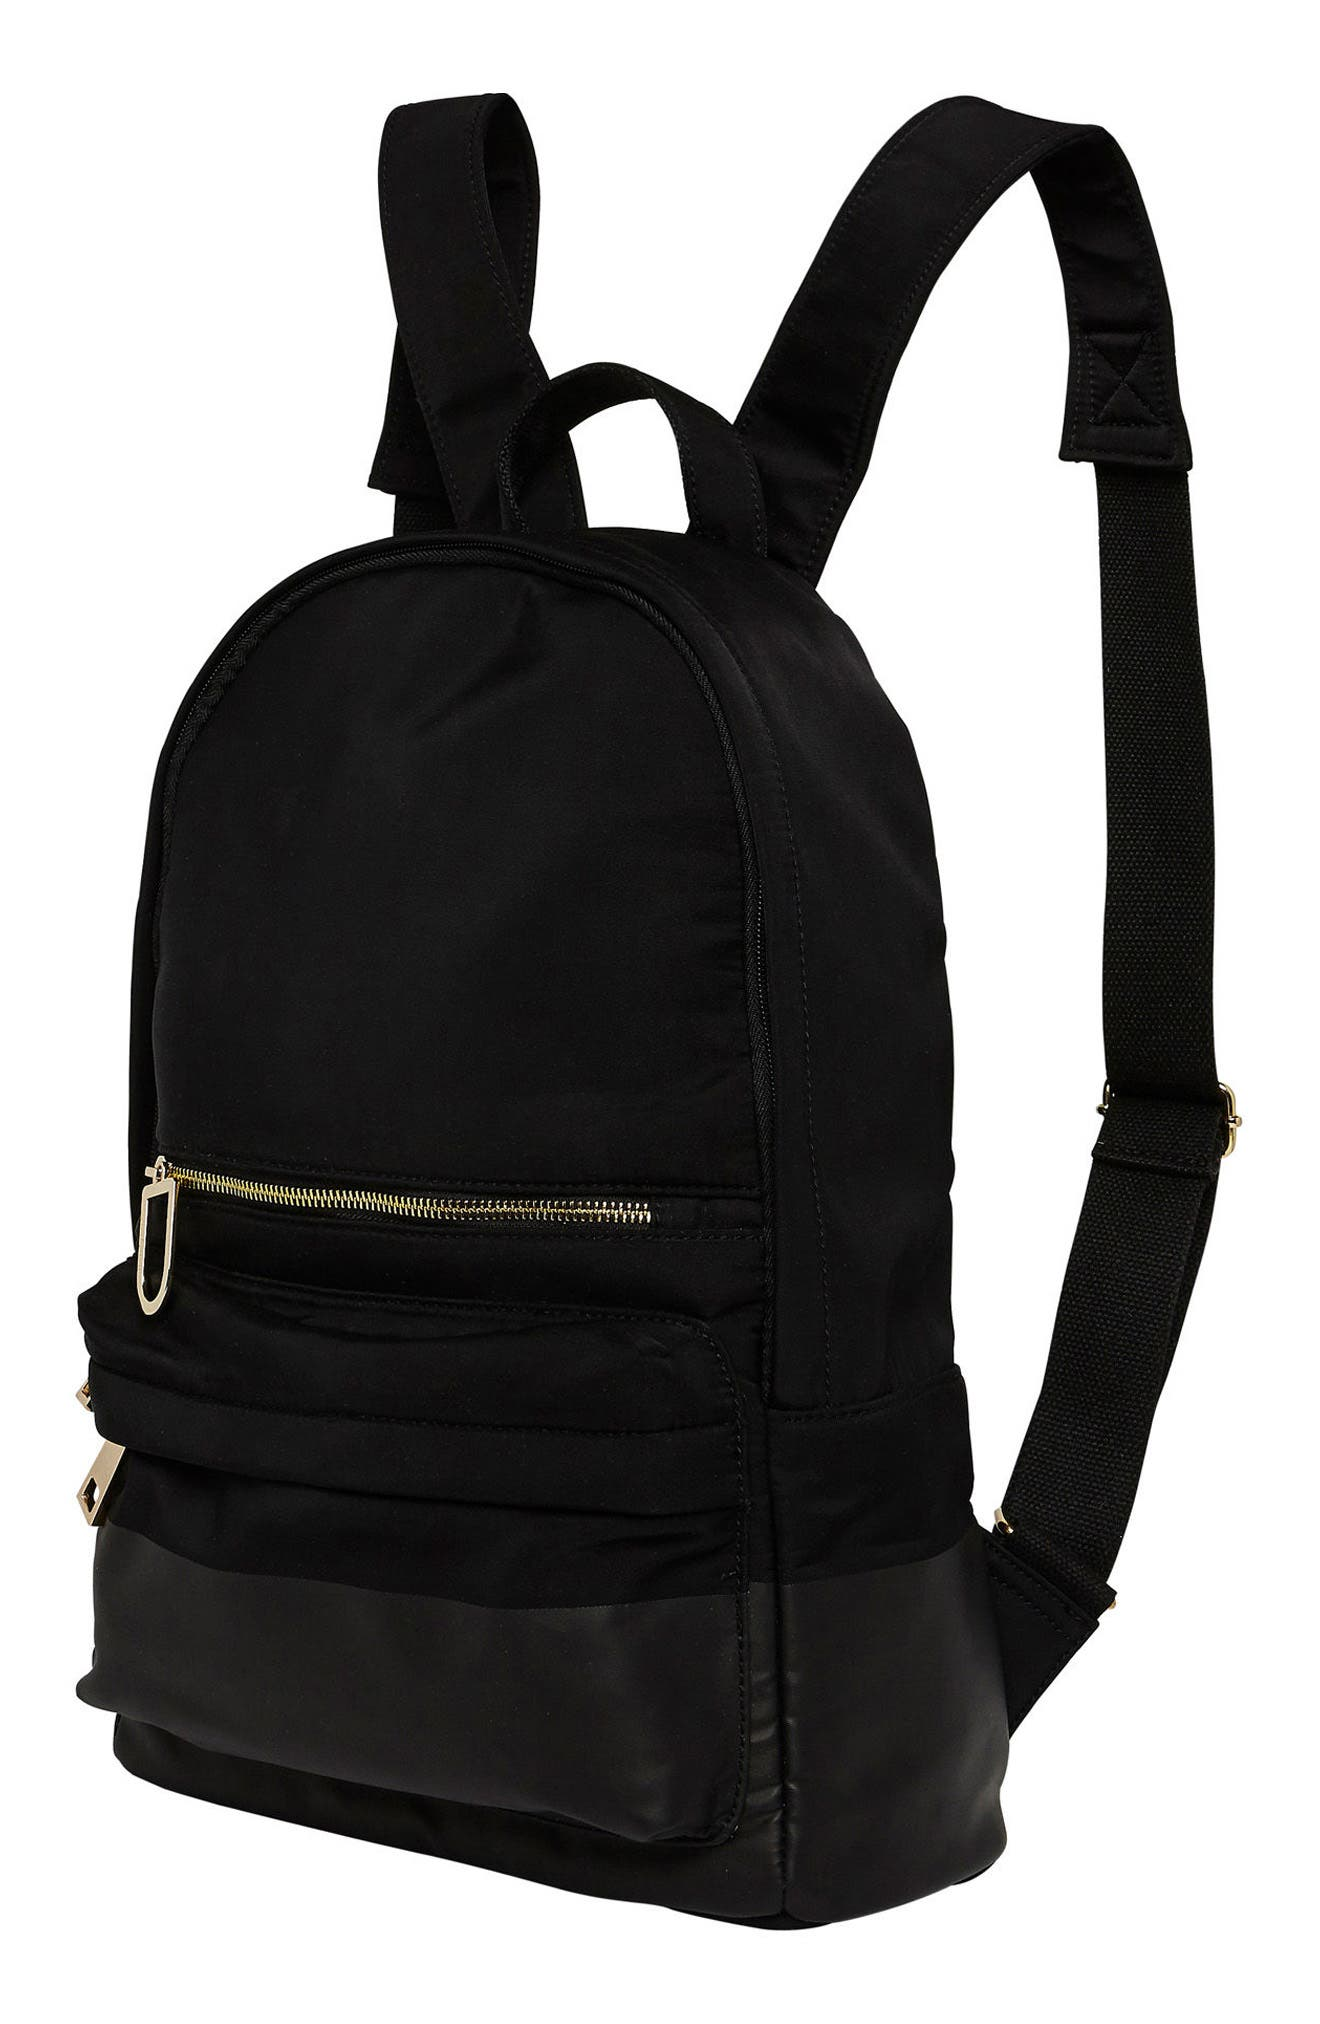 Own Beat Vegan Leather Backpack,                             Alternate thumbnail 5, color,                             001